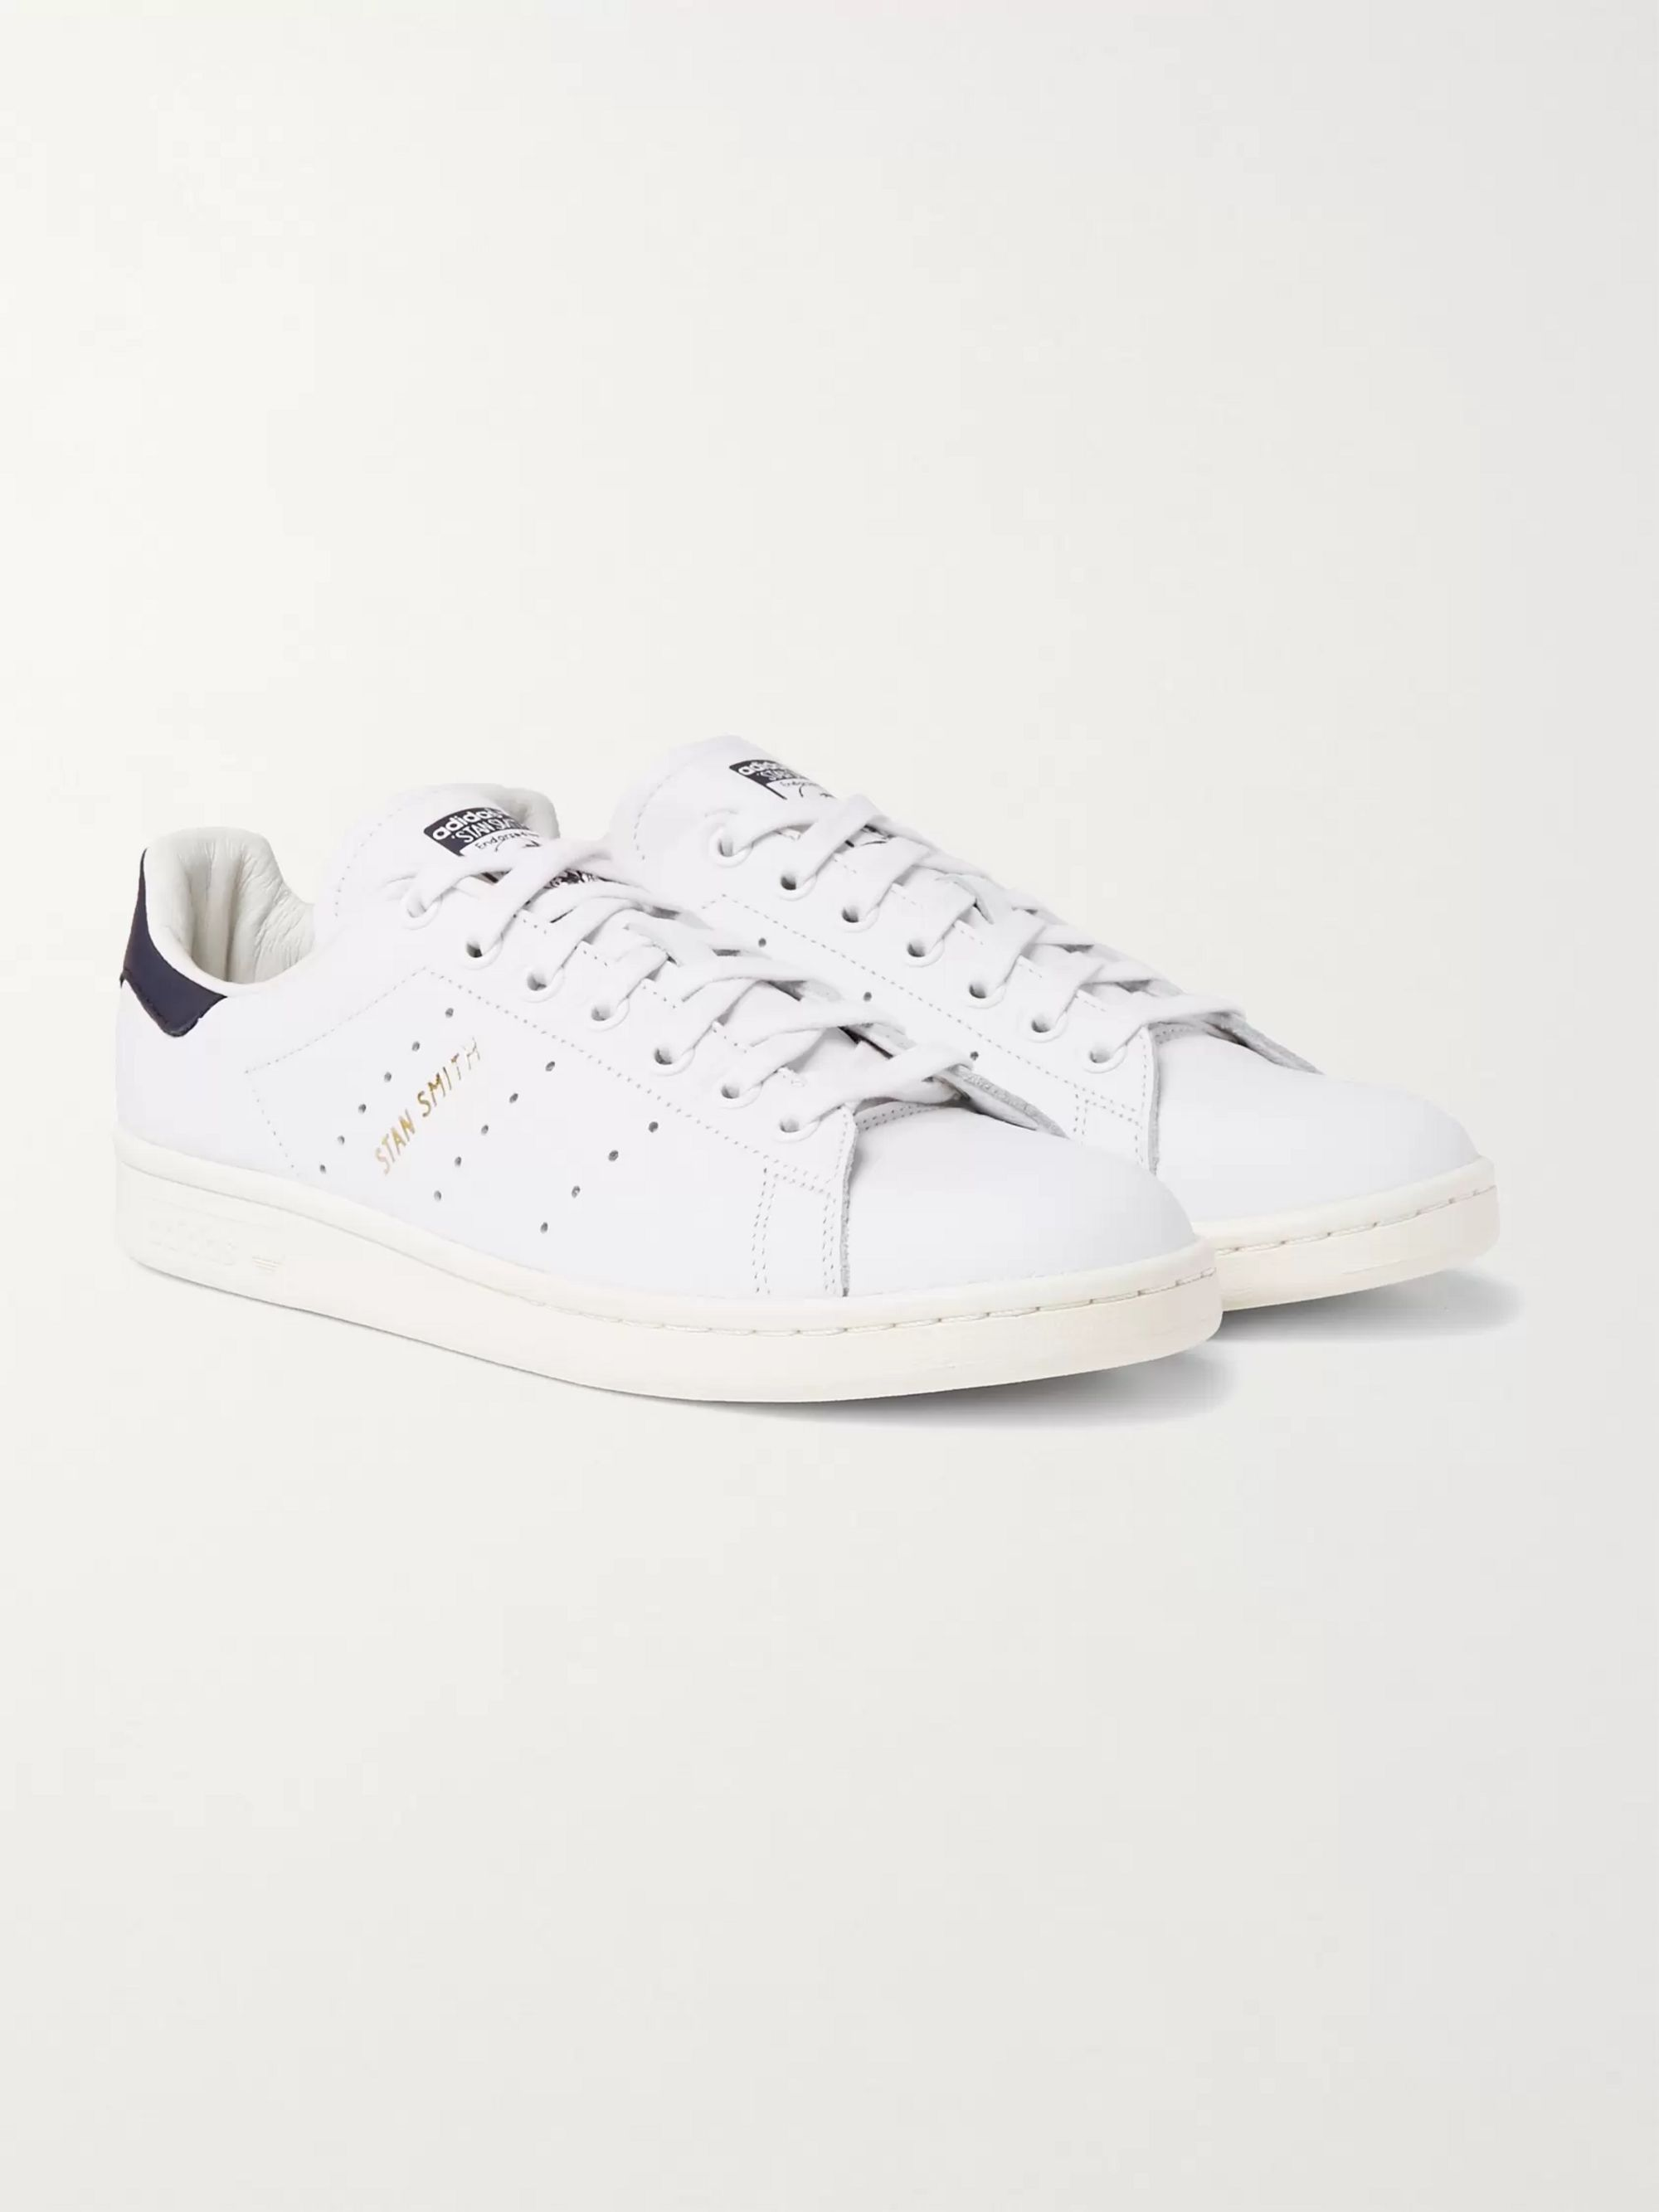 ADIDAS ORIGINALS ADIDAS WHITE STAN SMITH SNEAKERS